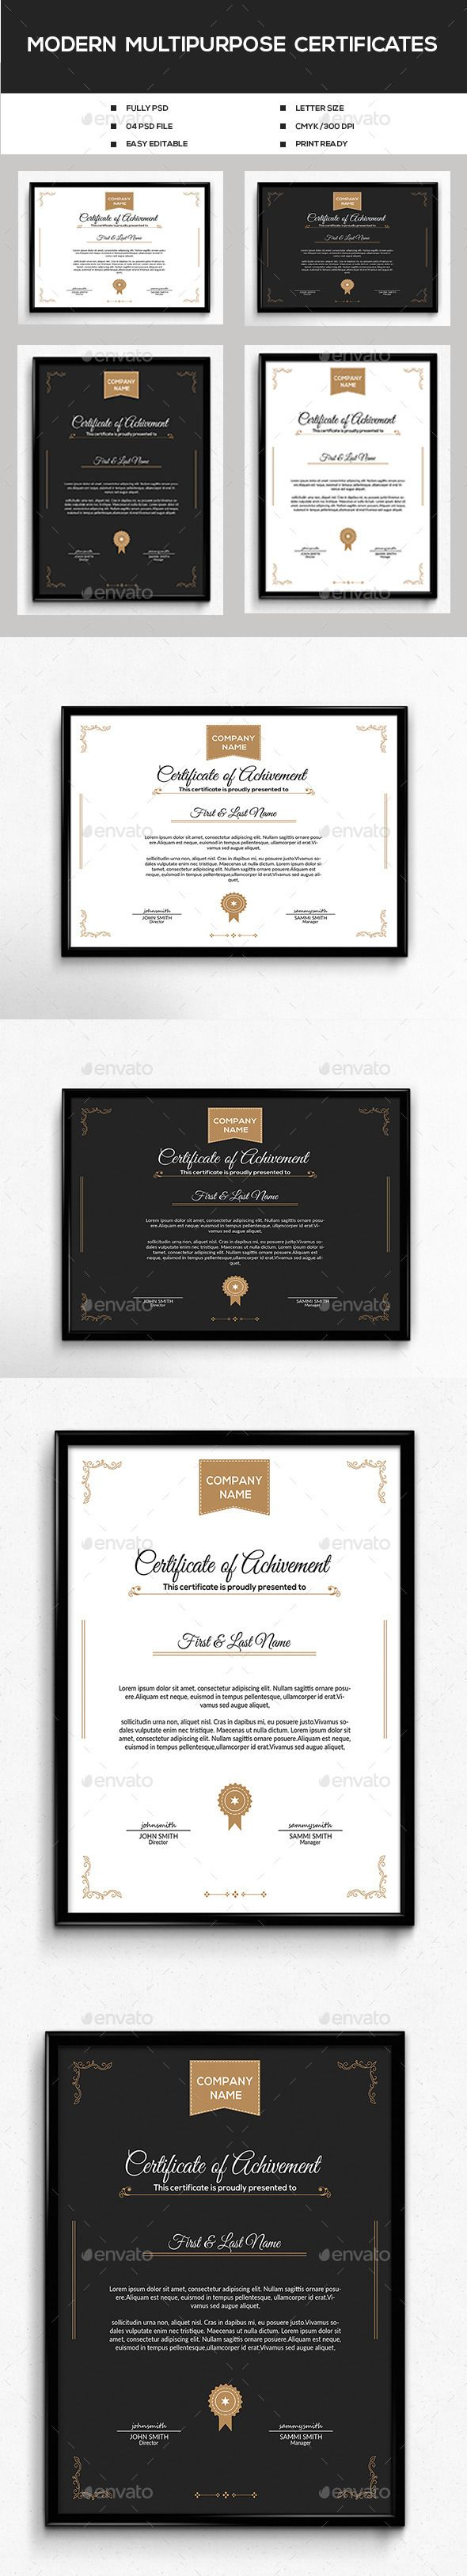 Modern multipurpose certificates template psd download here http modern multipurpose certificates template psd download here httpgraphicriver yadclub Choice Image